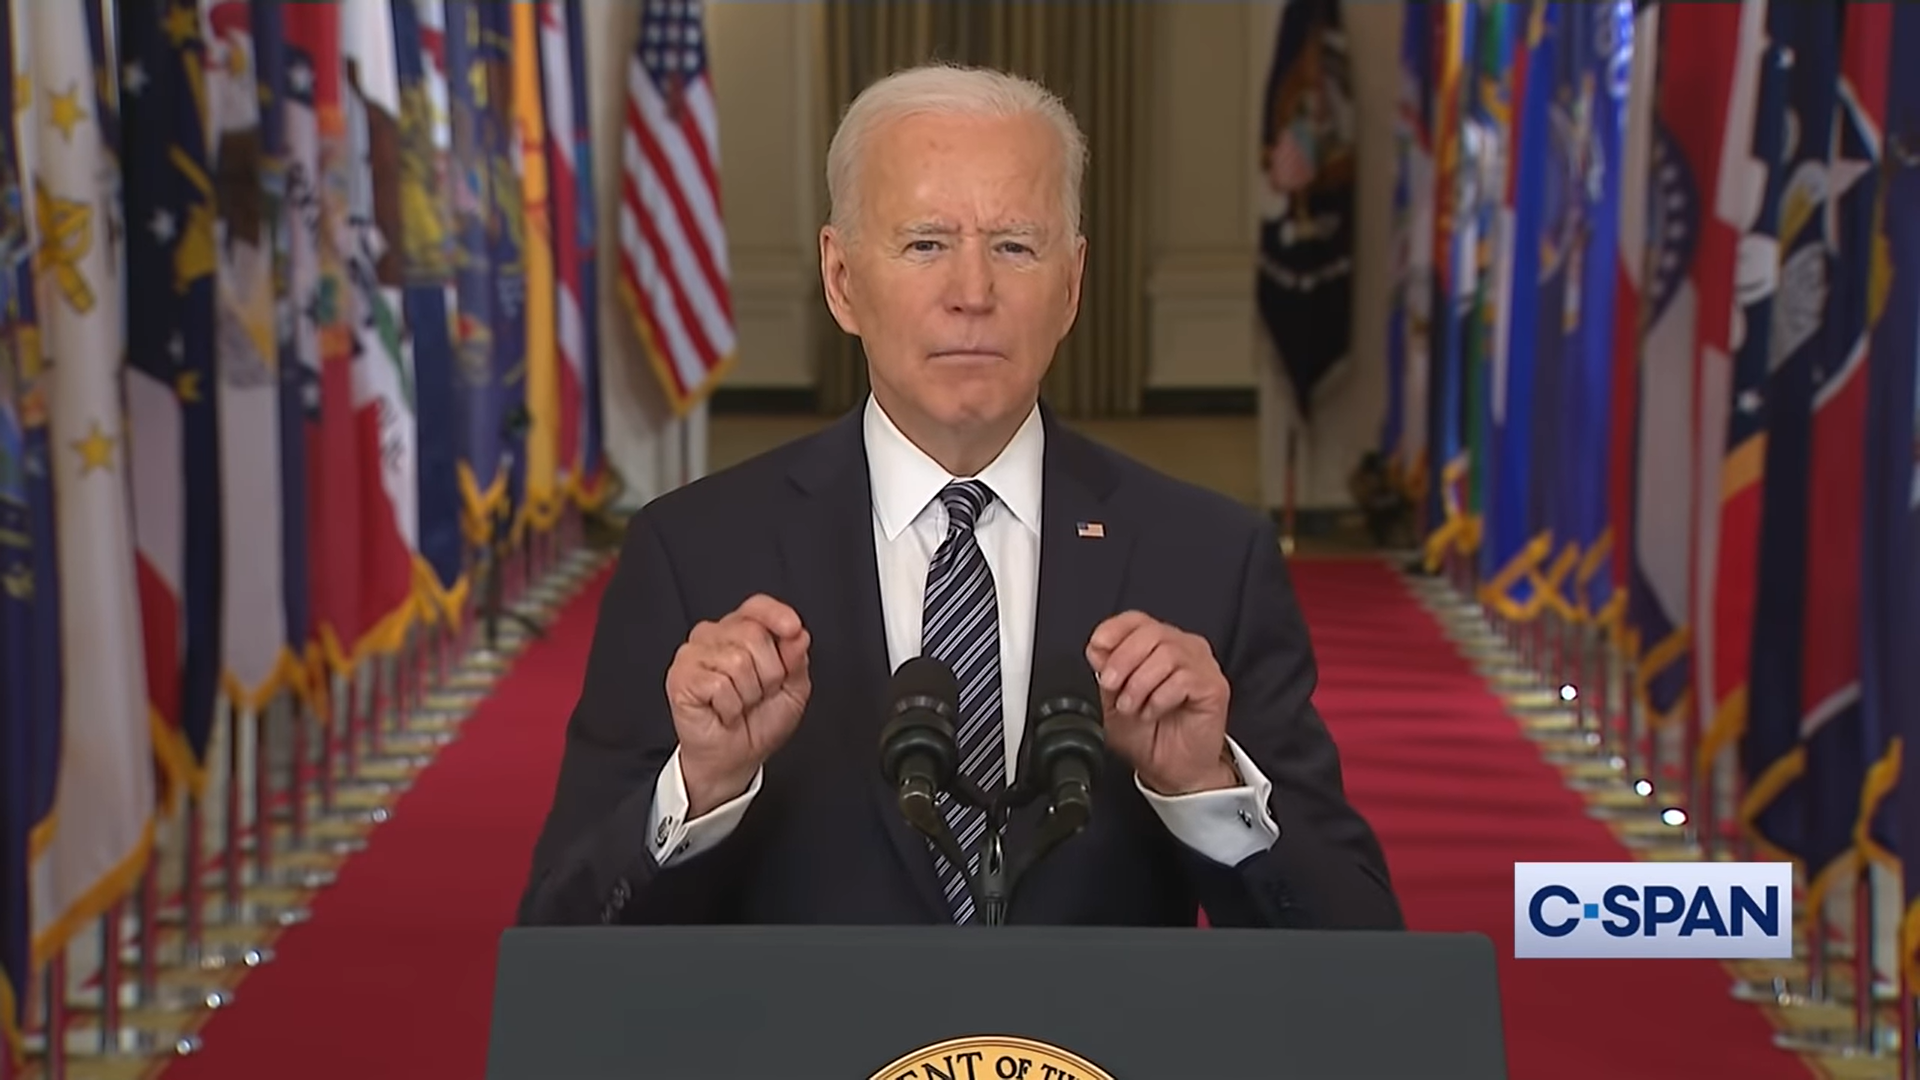 joe biden giving an address to camera